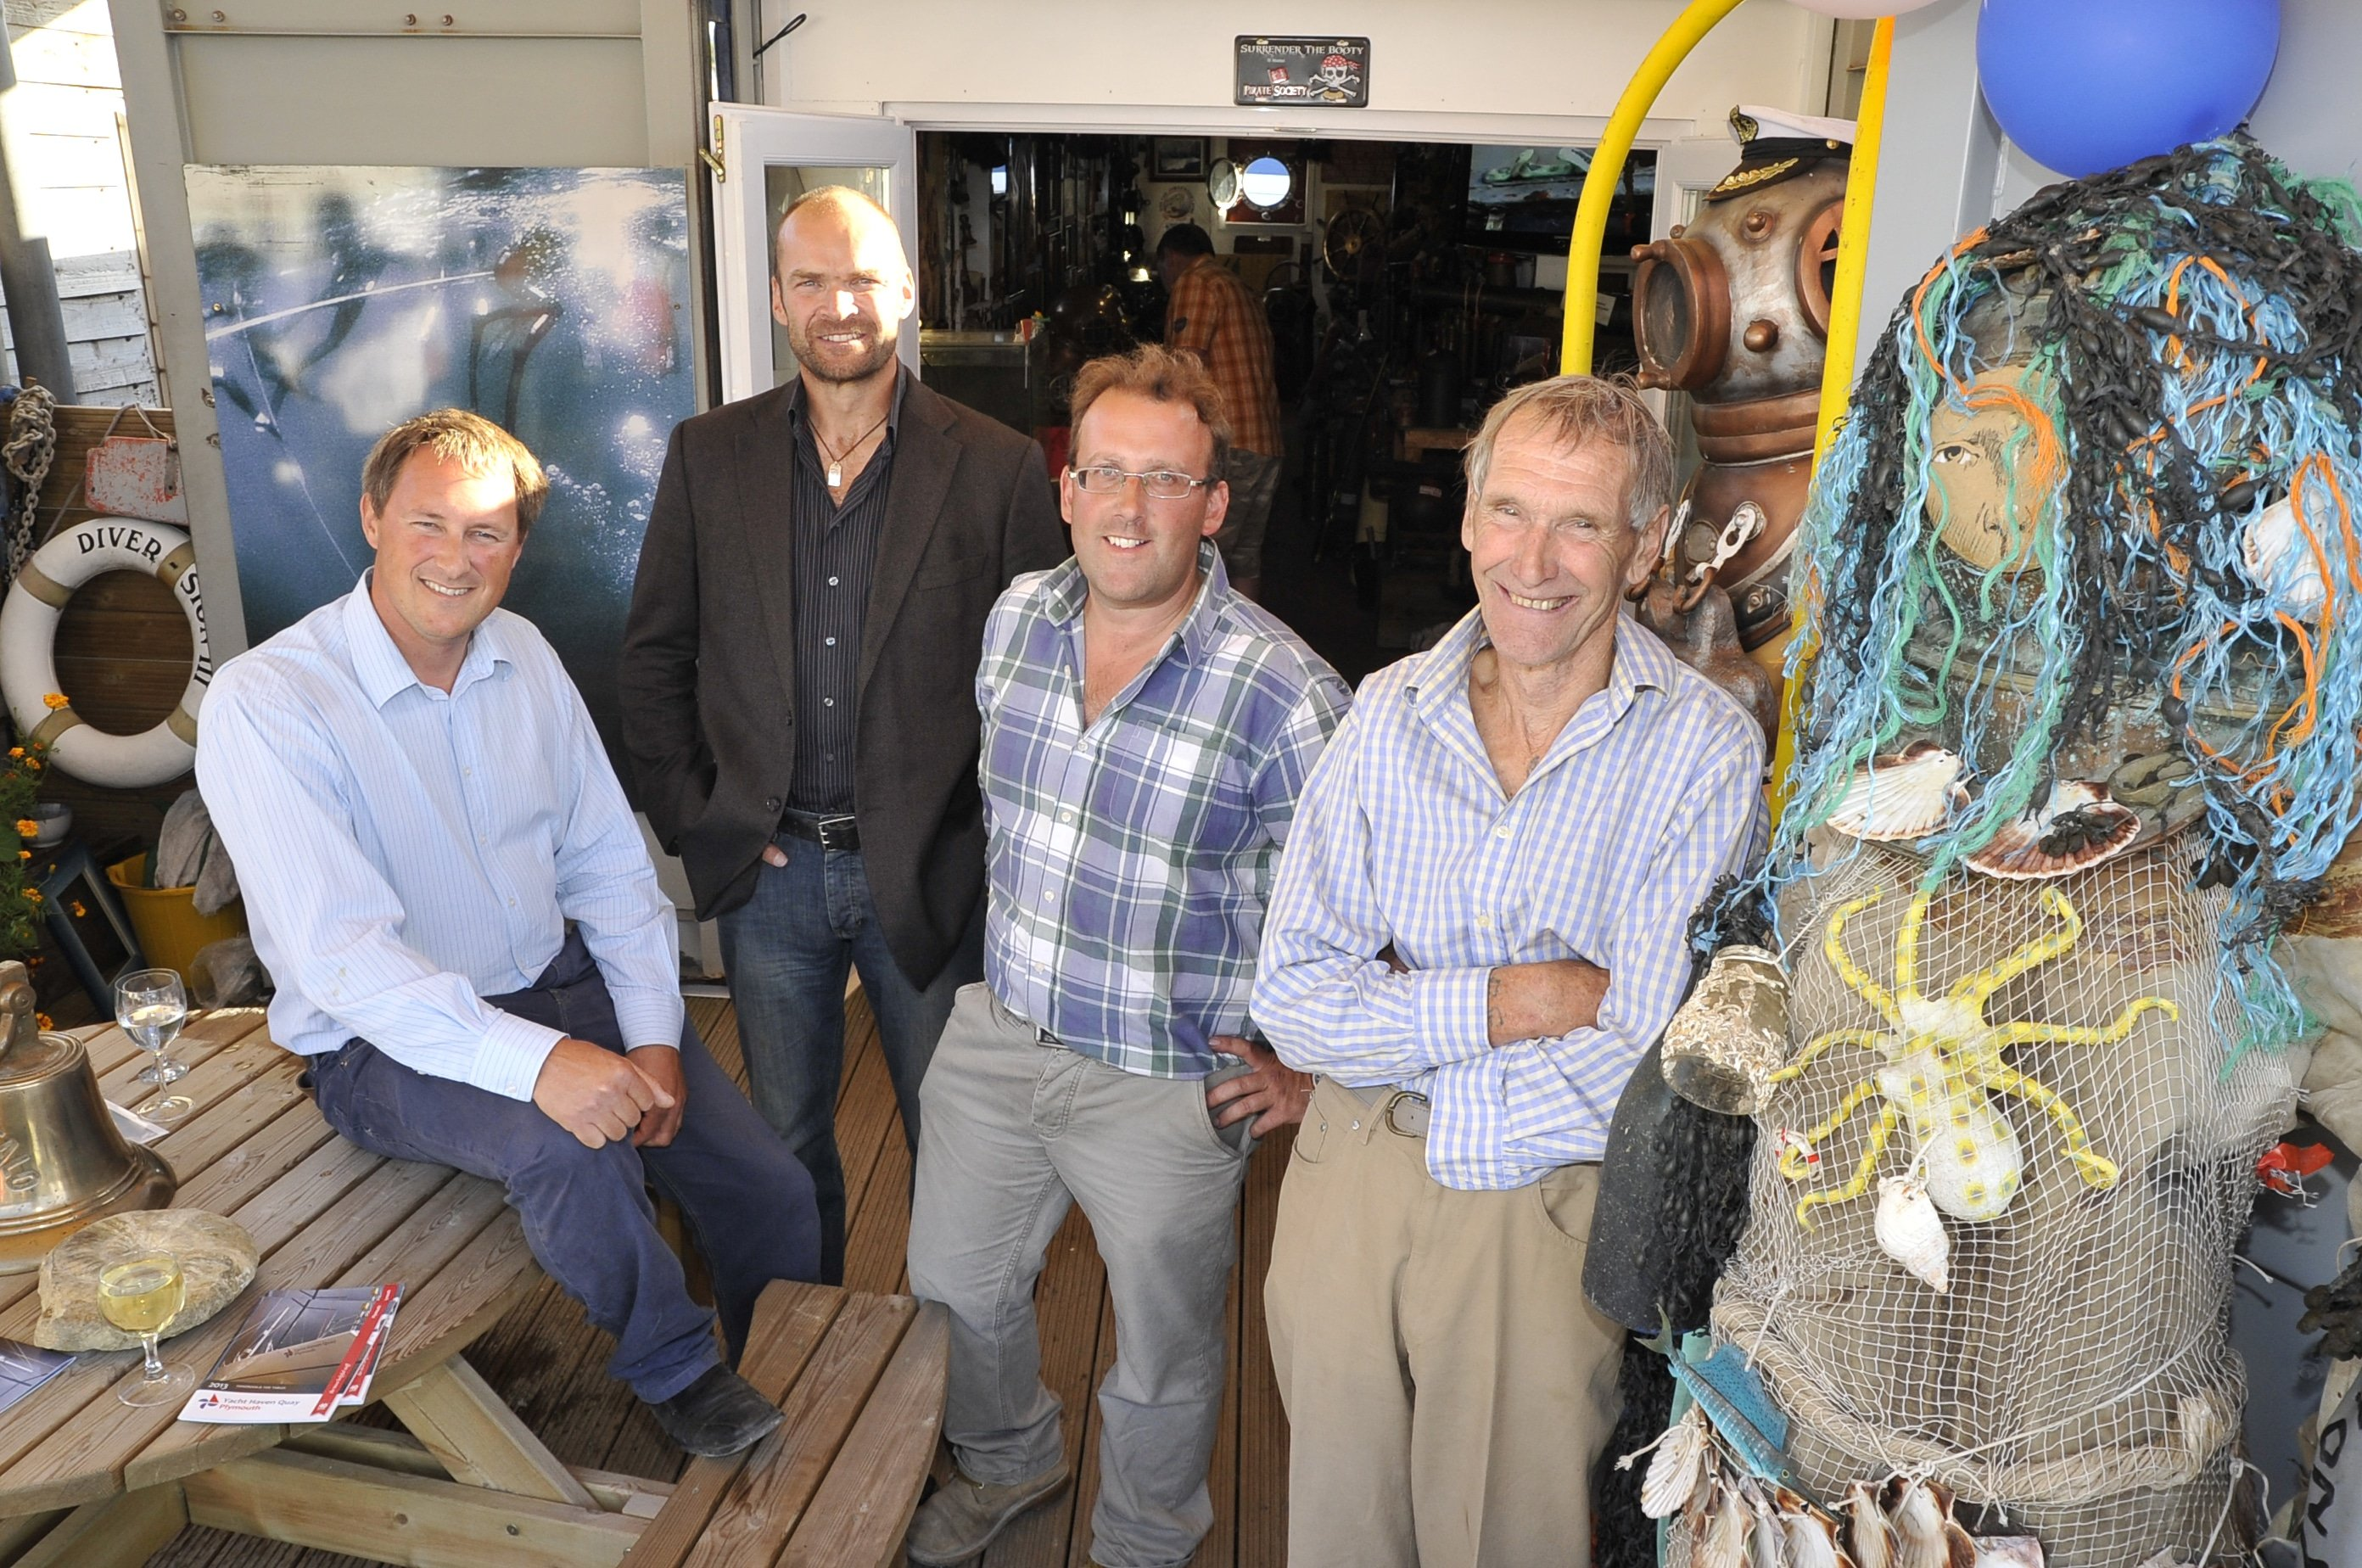 Monty Halls Opens New Dive Museum In The UK